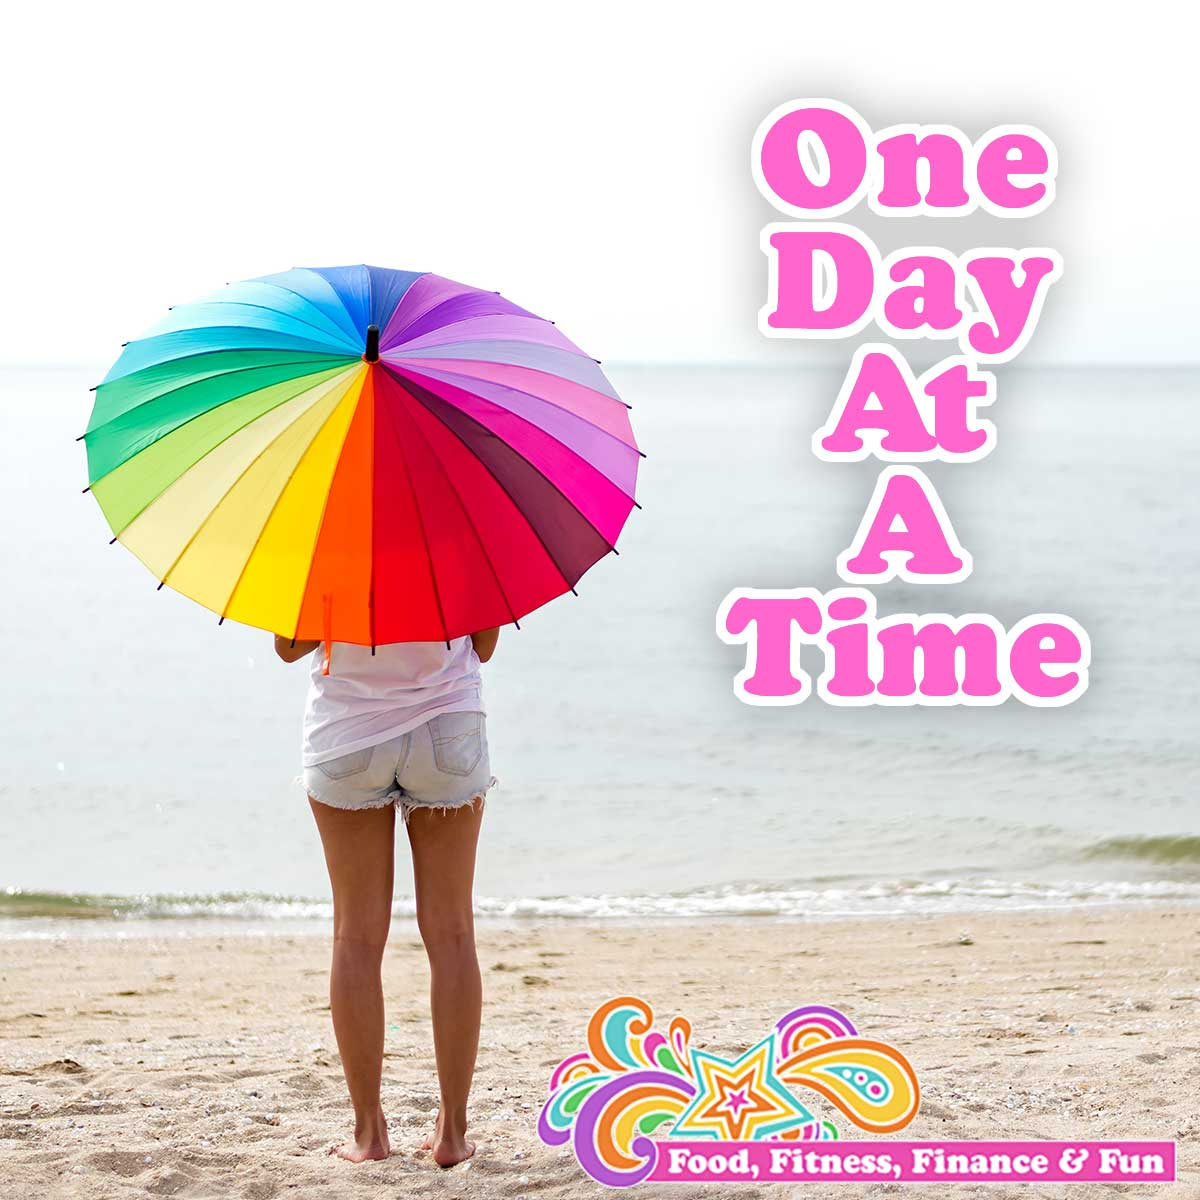 One Day At A Time - Kirsten McCay